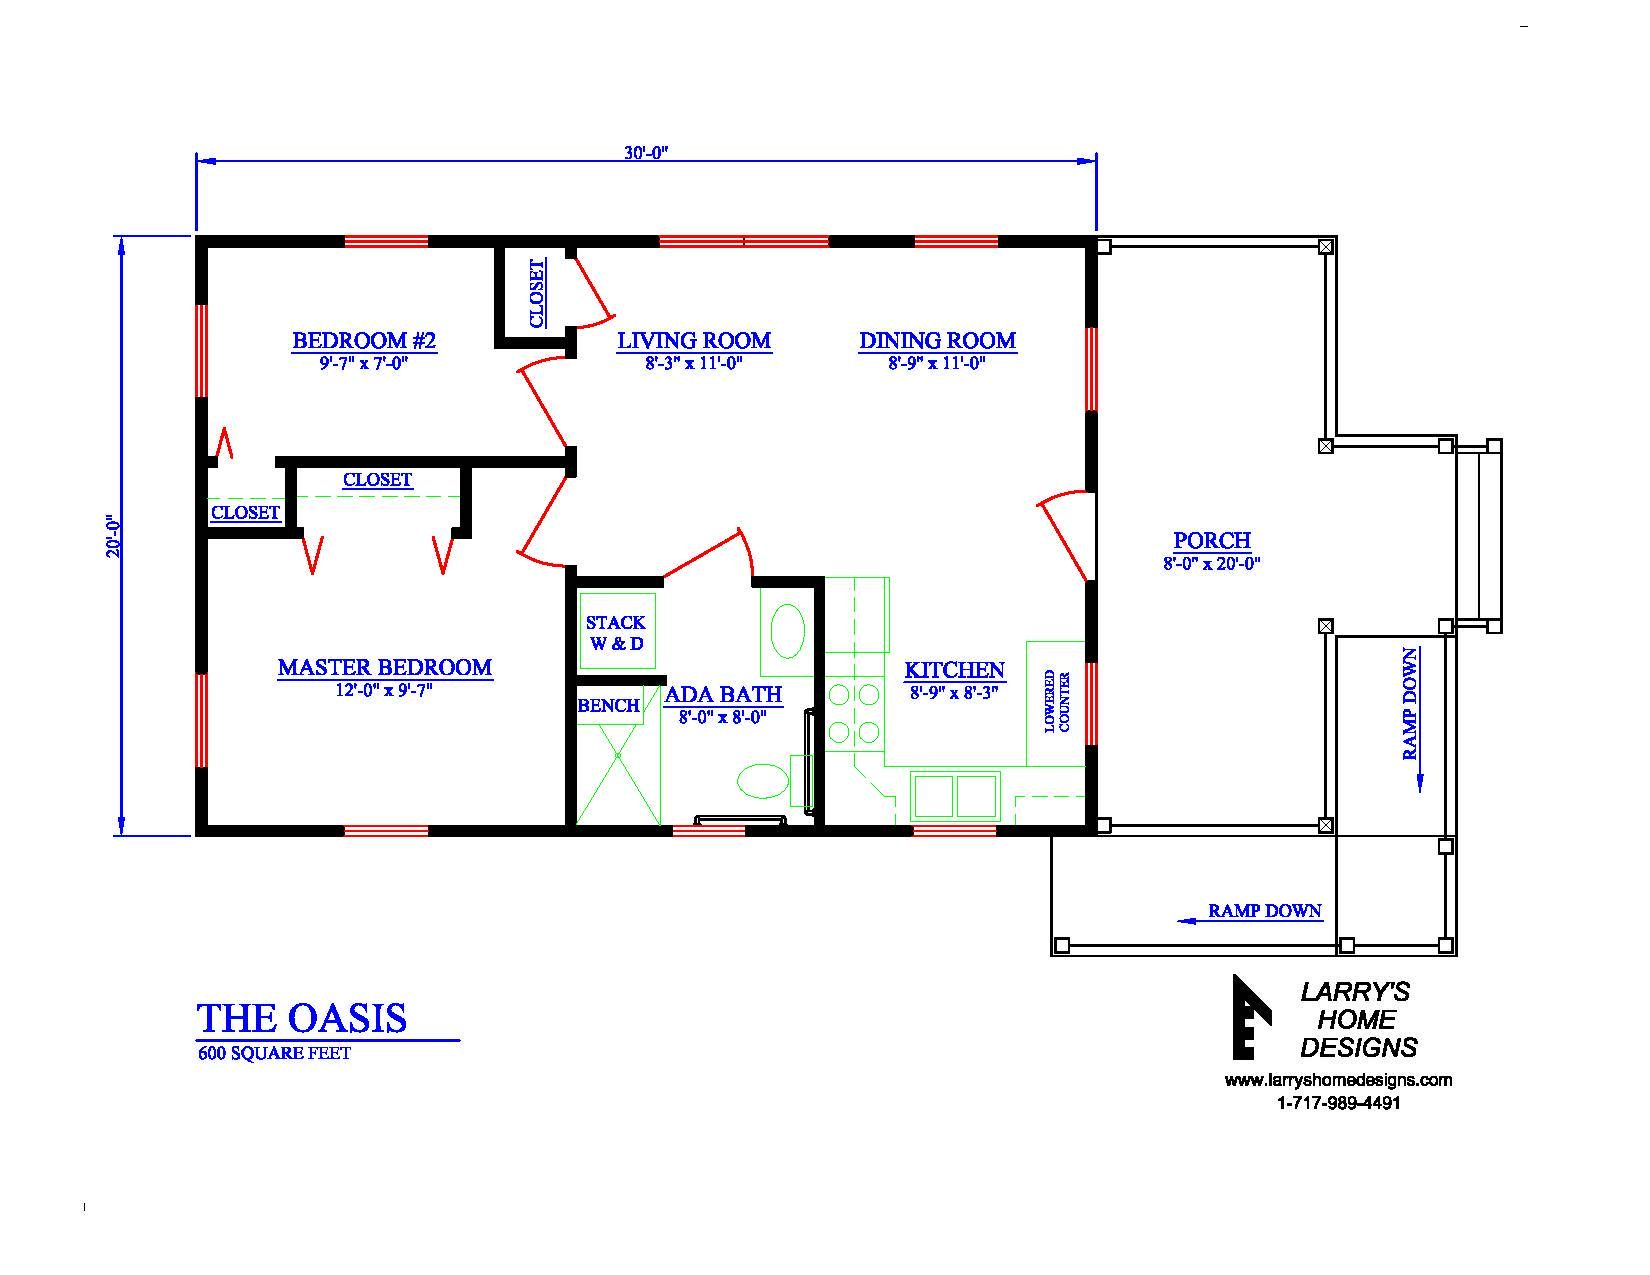 Wheelchair Accessible Tiny House Plans Enable Your Dream on house structure, house exterior, house design, house elevations, house construction, house rendering, house painting, house roof, house building, house drawings, house styles, house types, house blueprints, house foundation, house plants, house maps, house models, house framing, house clip art, house layout,